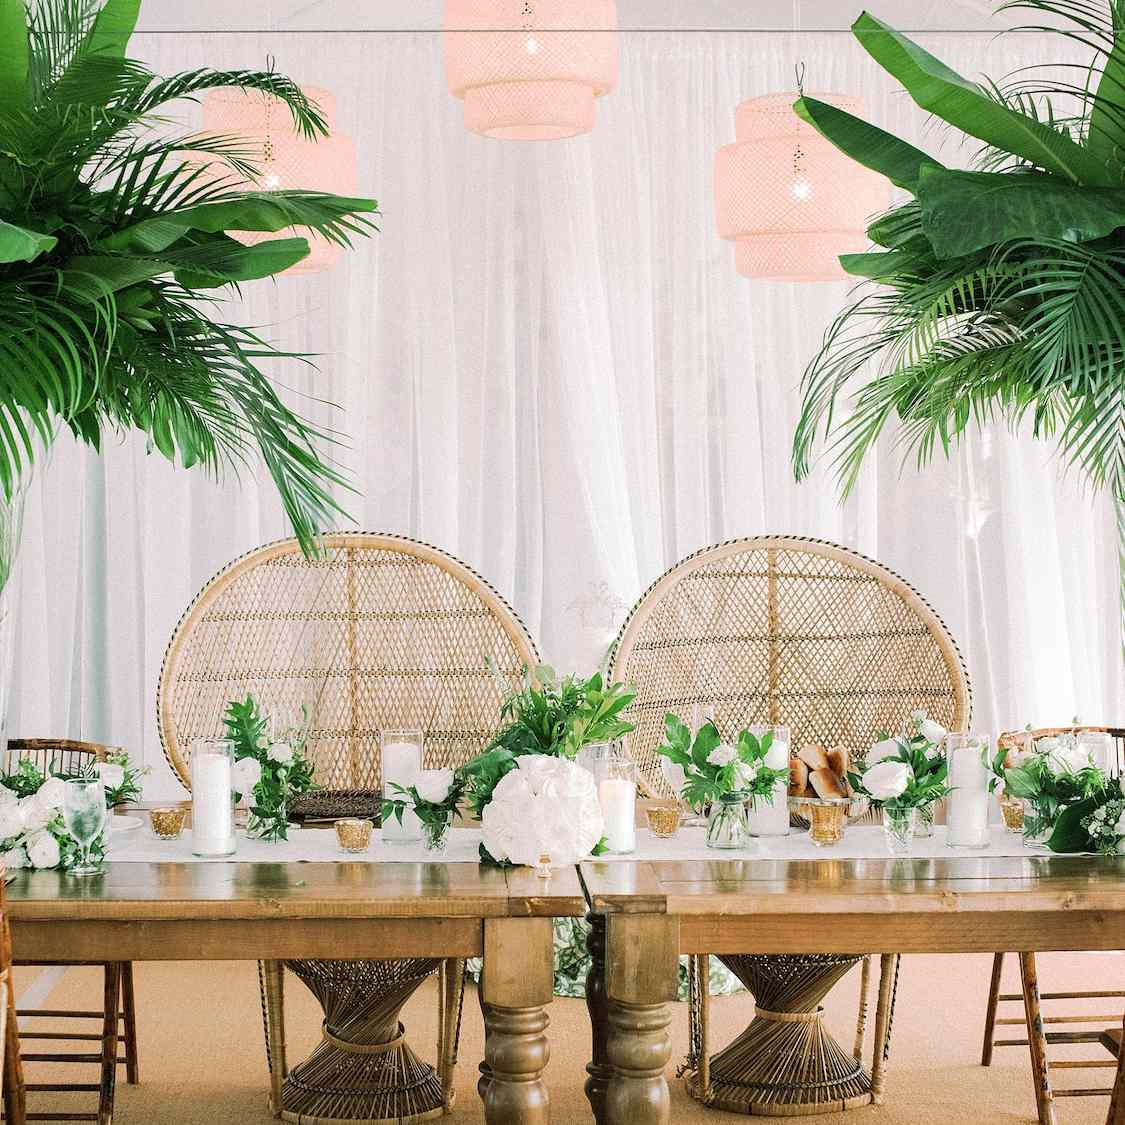 Rattan peacock sweetheart chairs in front of reception table